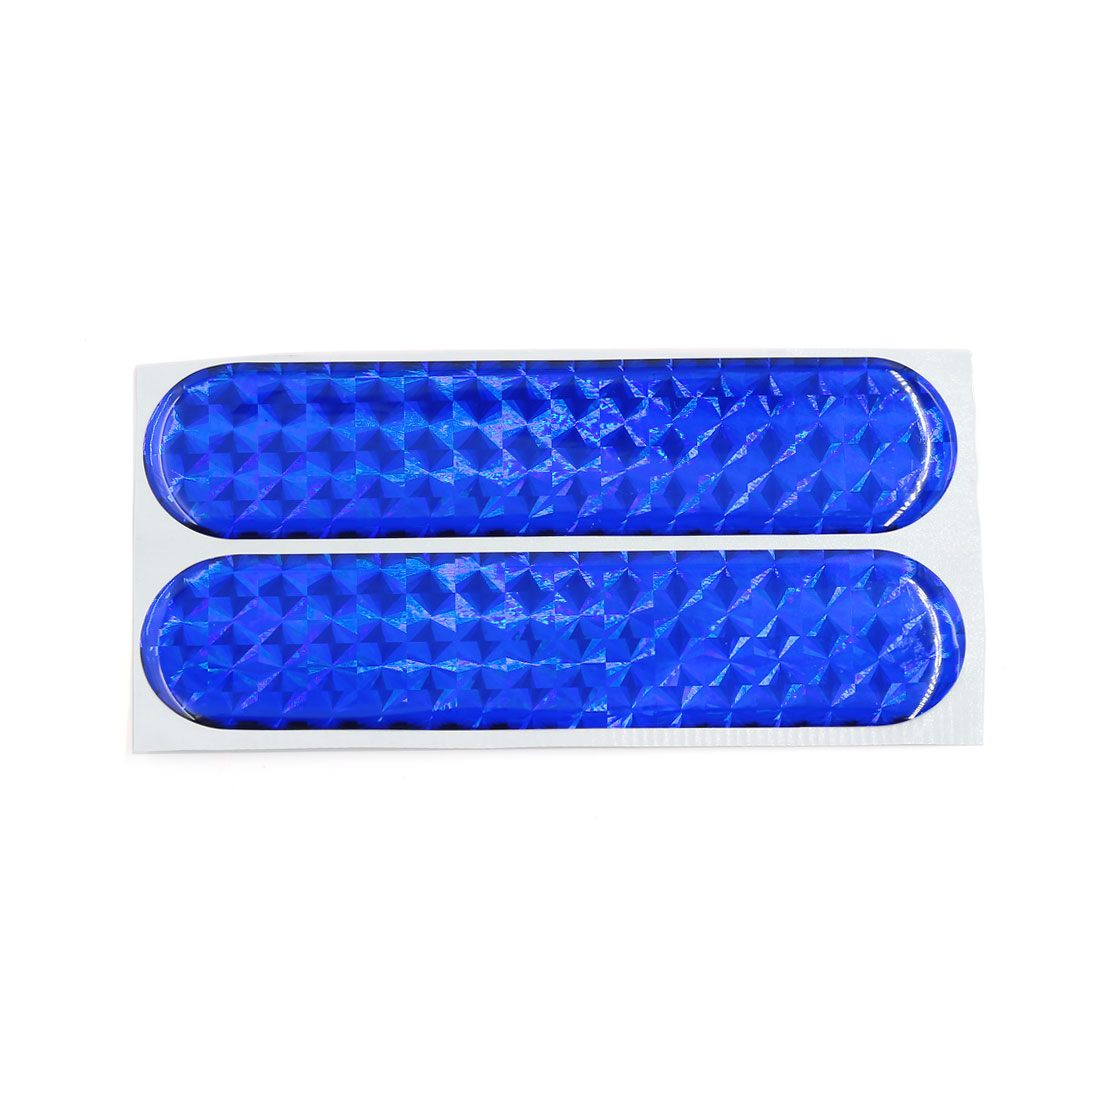 20pcs 105 x 23mm Blue Plastic Reflective Warning Tape Stickers for Car Safety